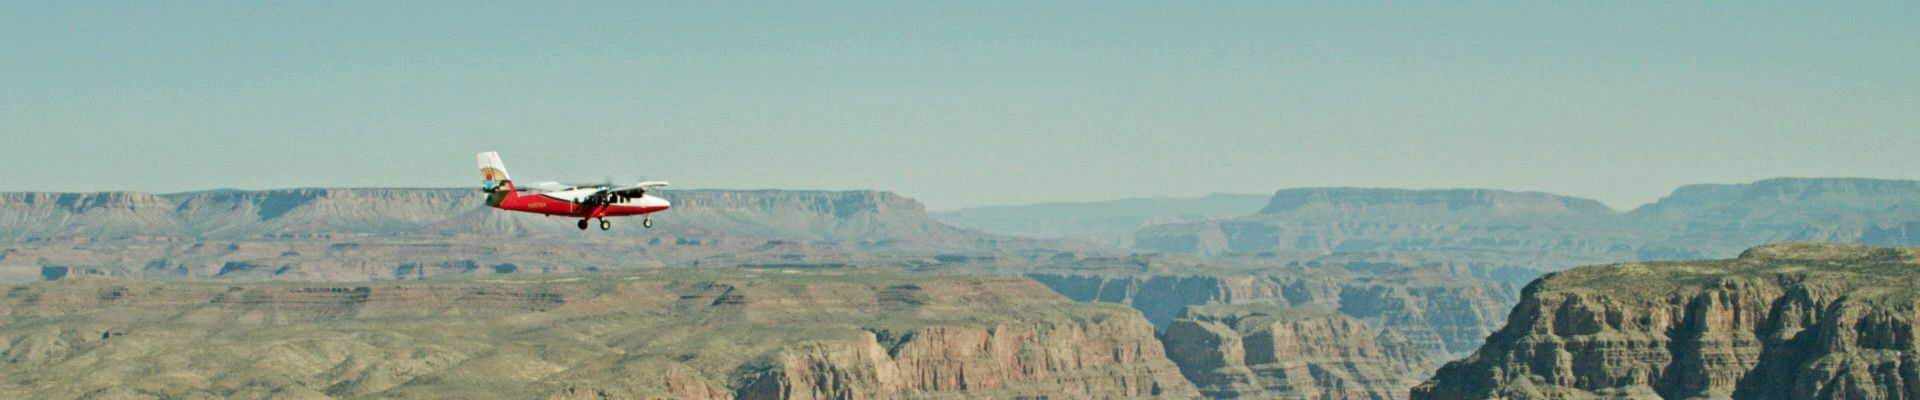 A small aircraft flies over a wide Grand Canyon landscape.